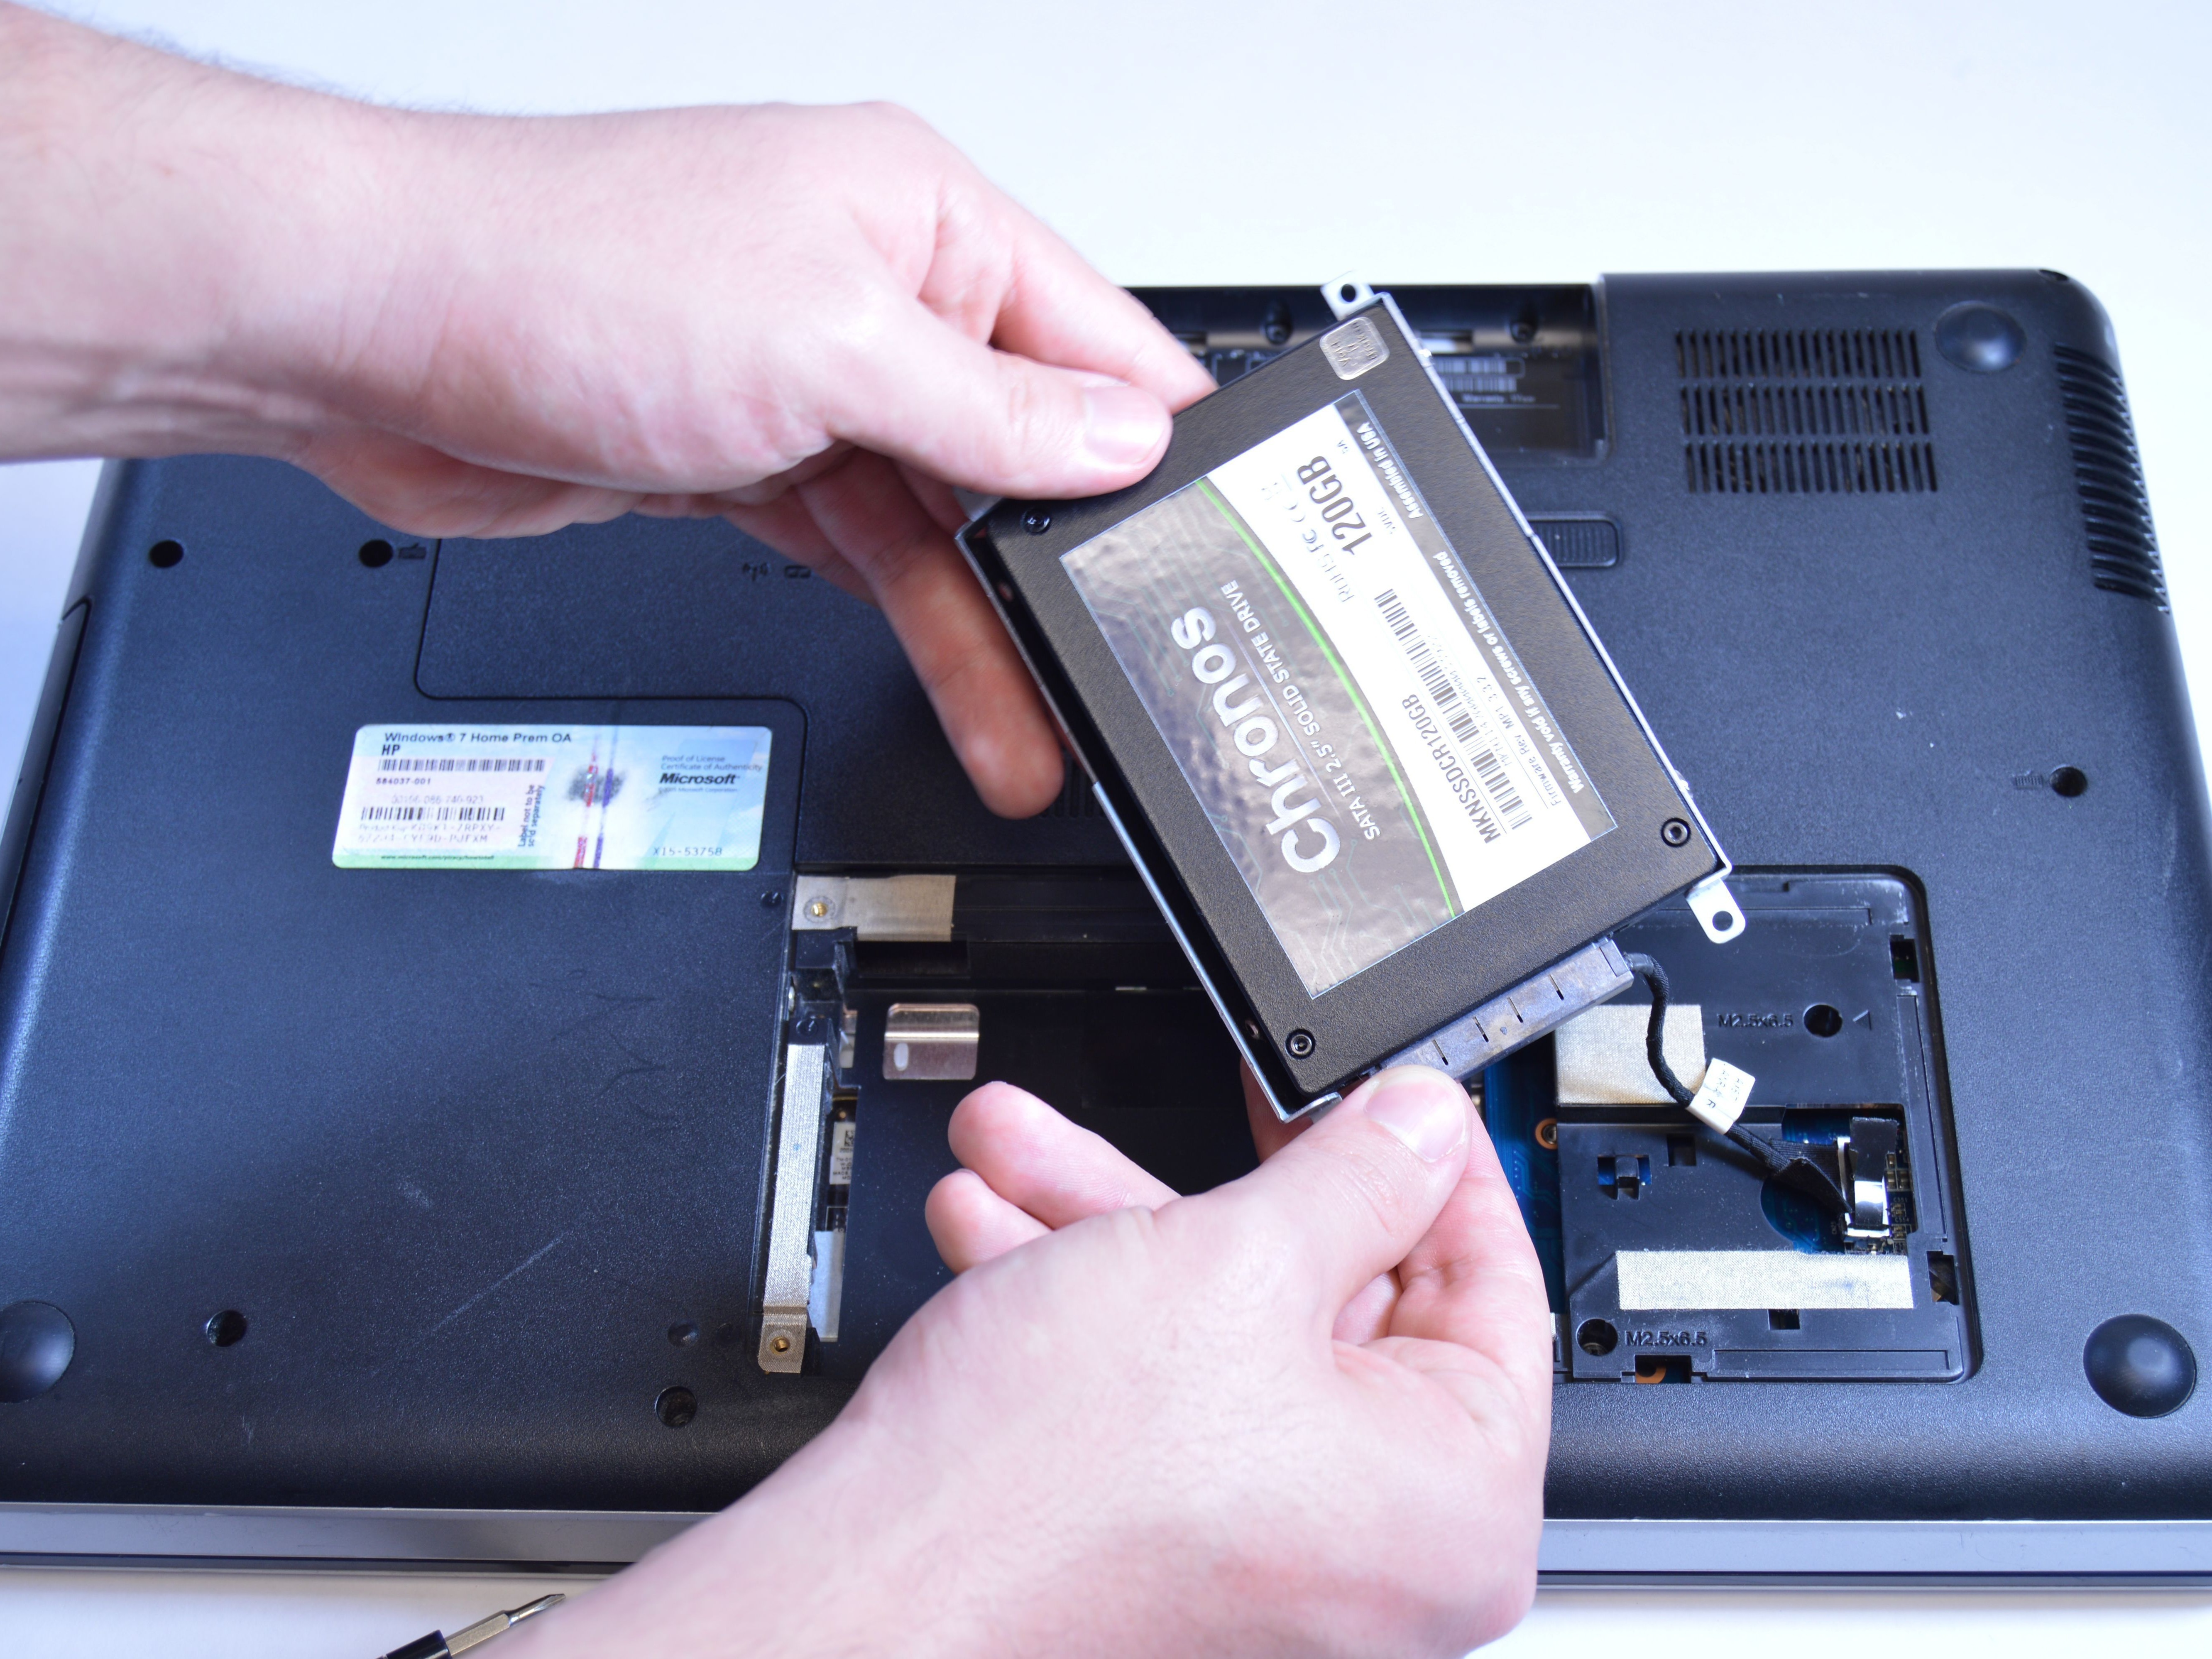 hp g62 223cl hard drive replacement ifixit repair guide rh ifixit com